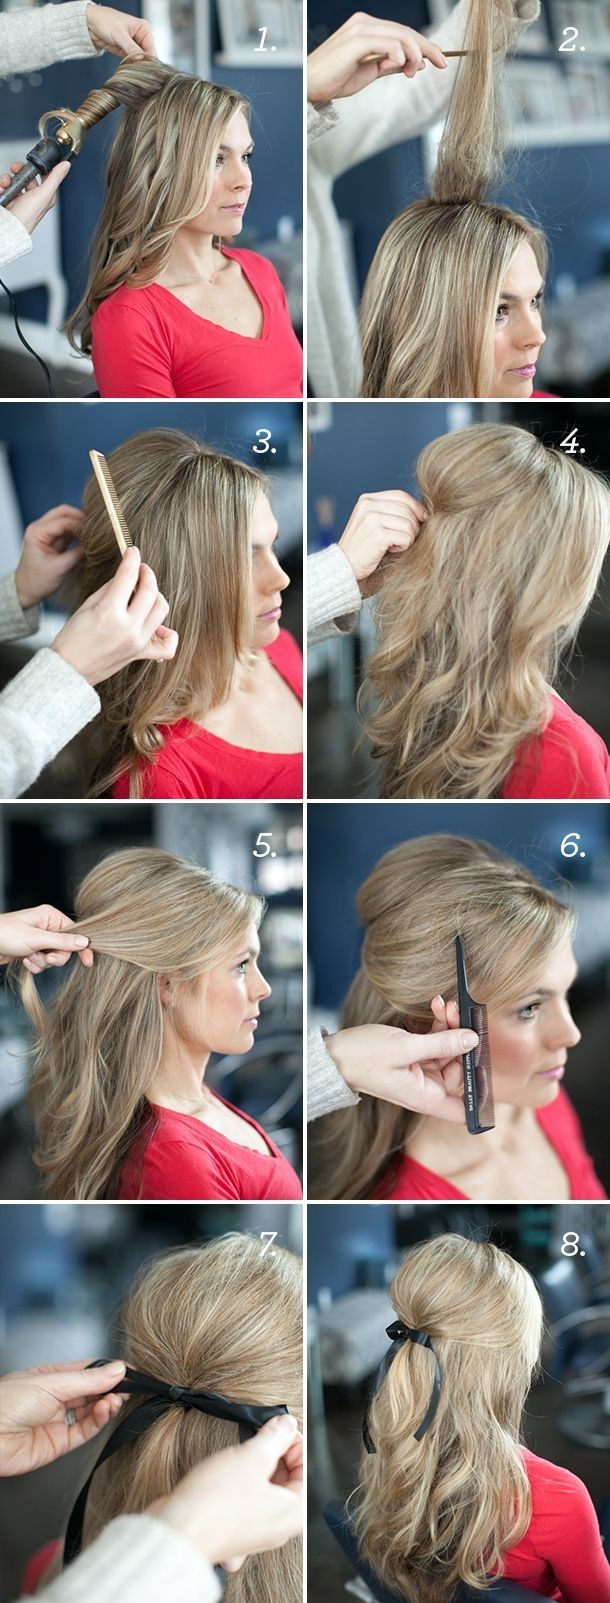 best images about hairstyles on pinterest curls bridal hair